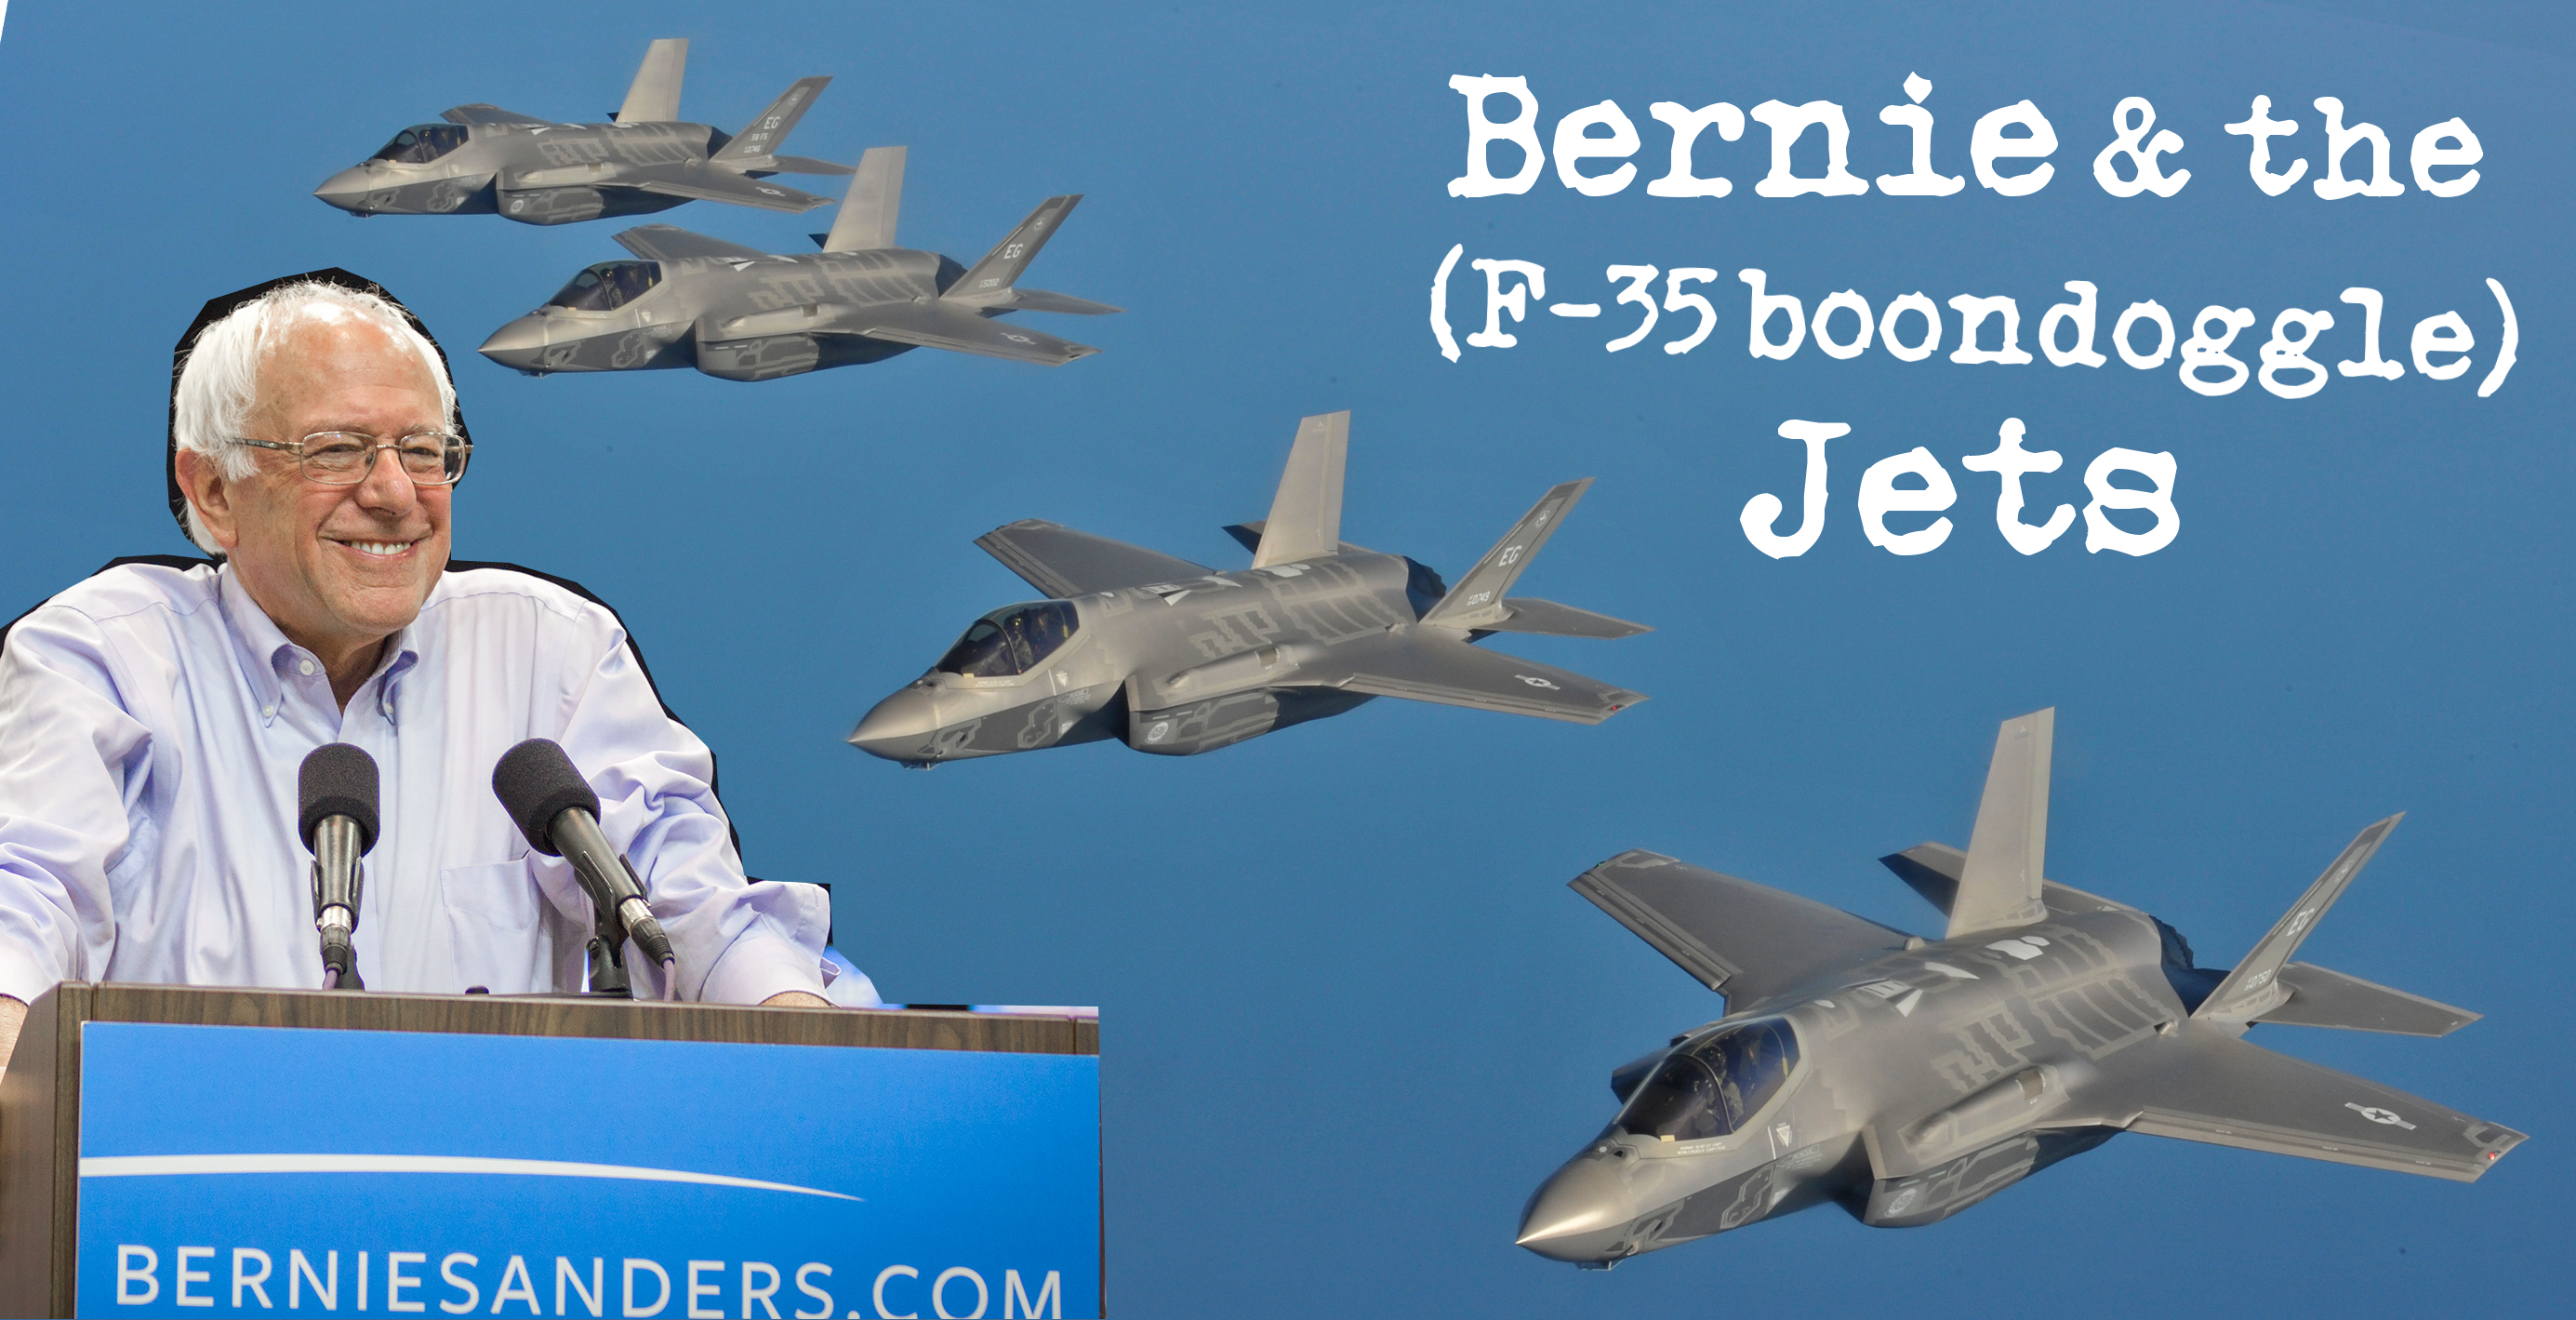 bernie-and-the-jets2